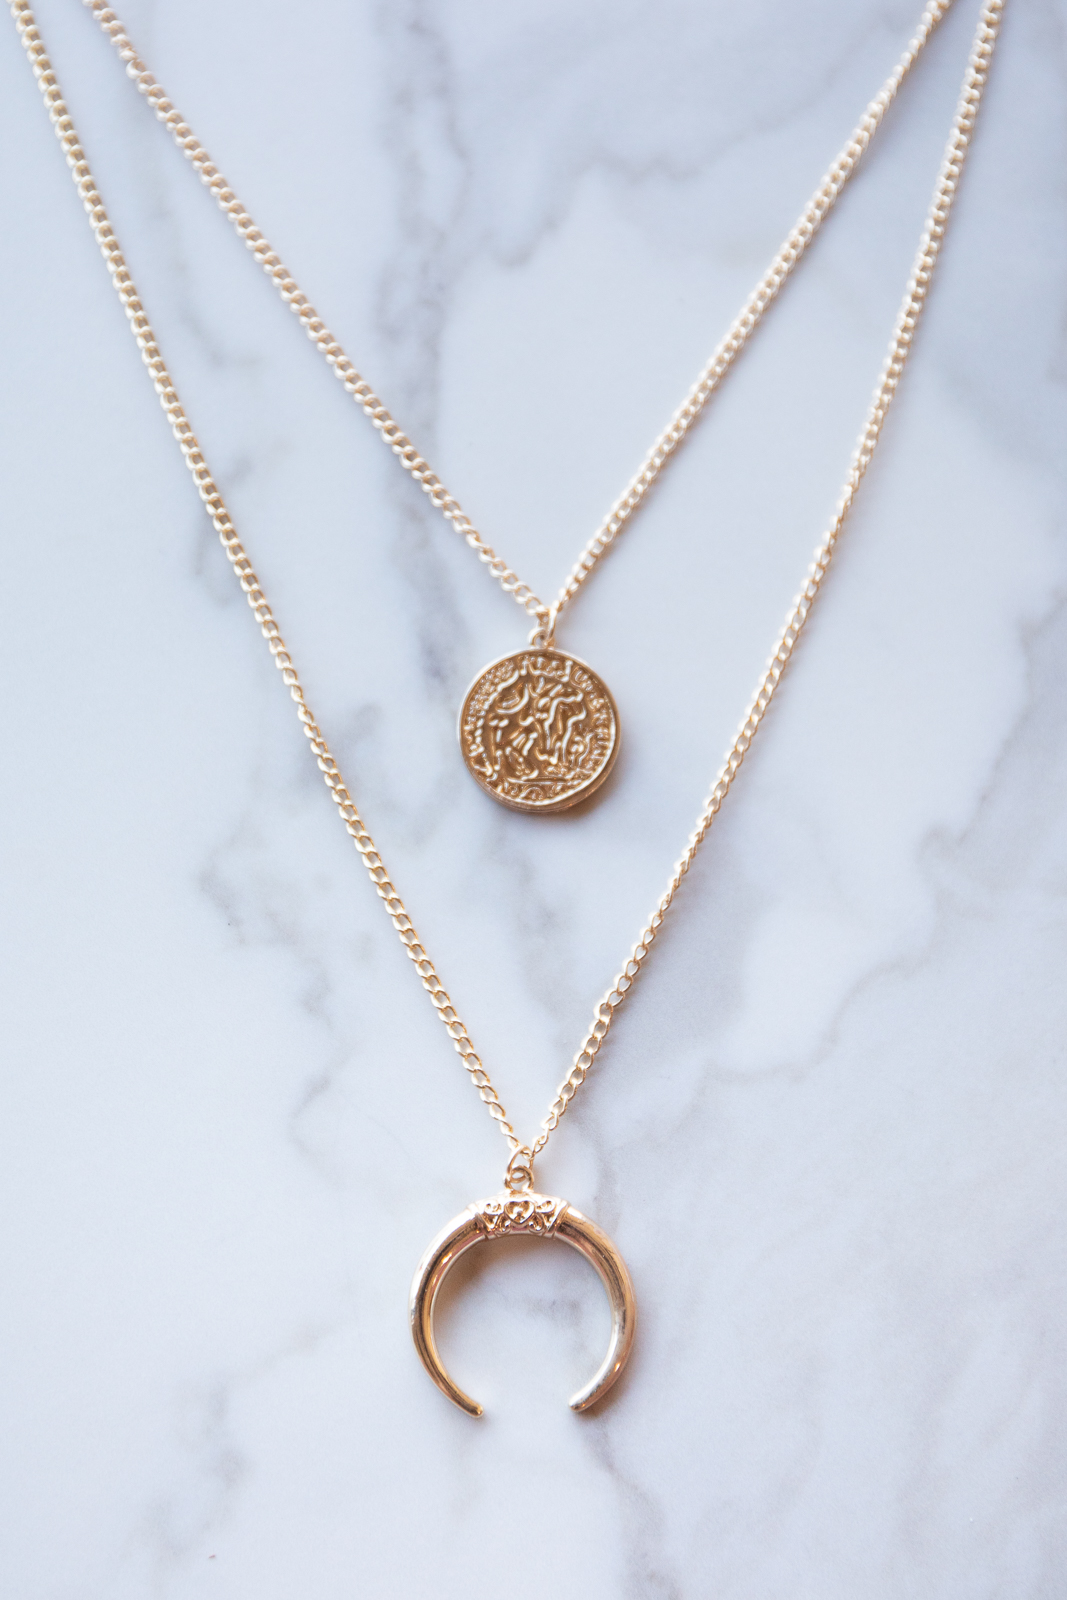 Gold Layer Necklace with Coin and Crescent Pendant